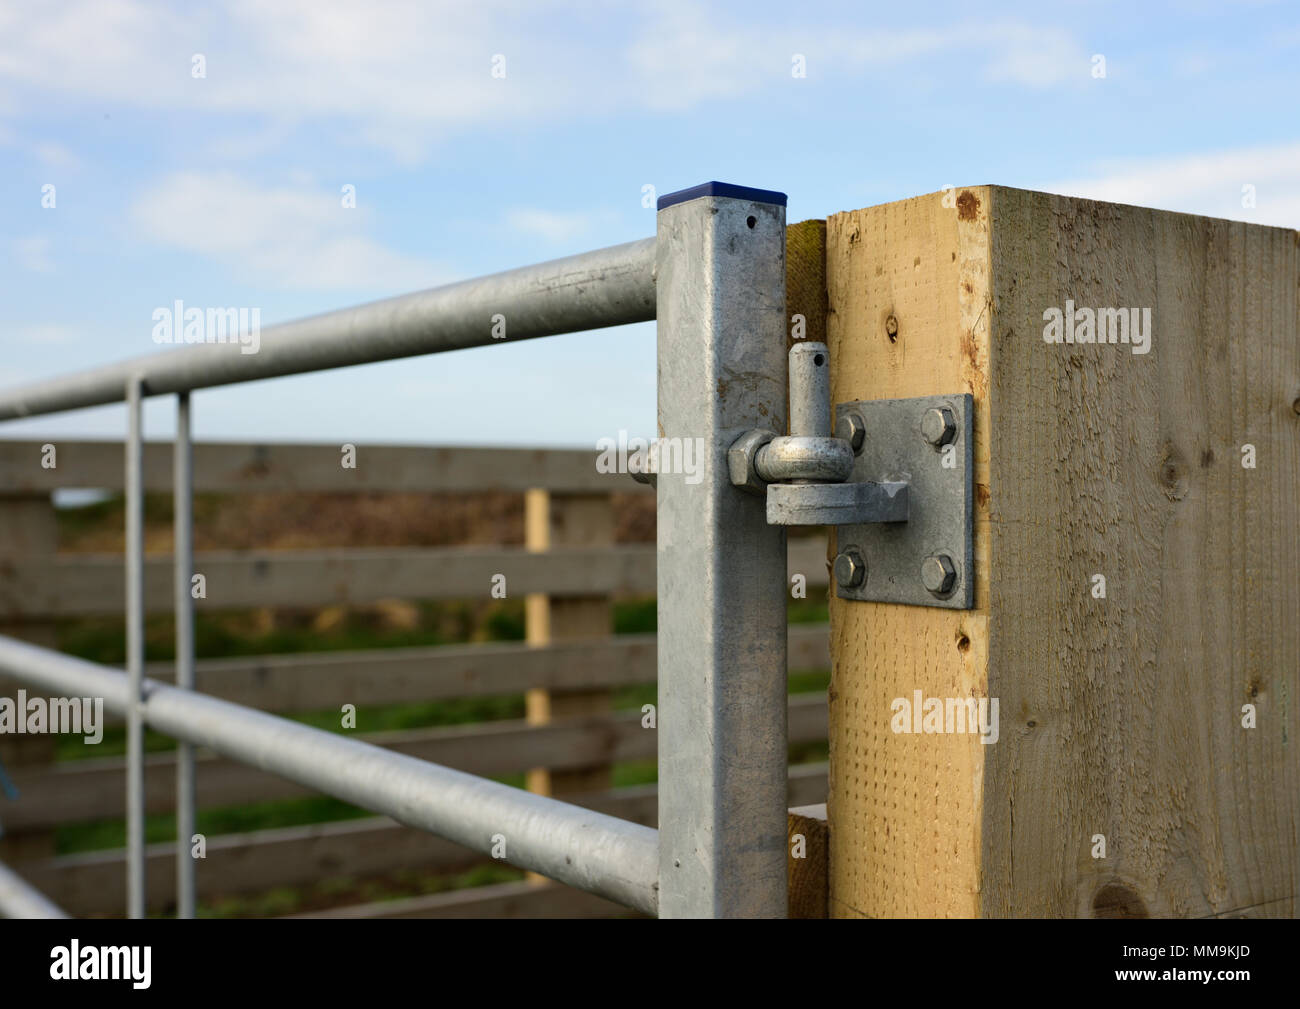 Timber and galvanized steel Sheep pen hinge detail in north wales uk